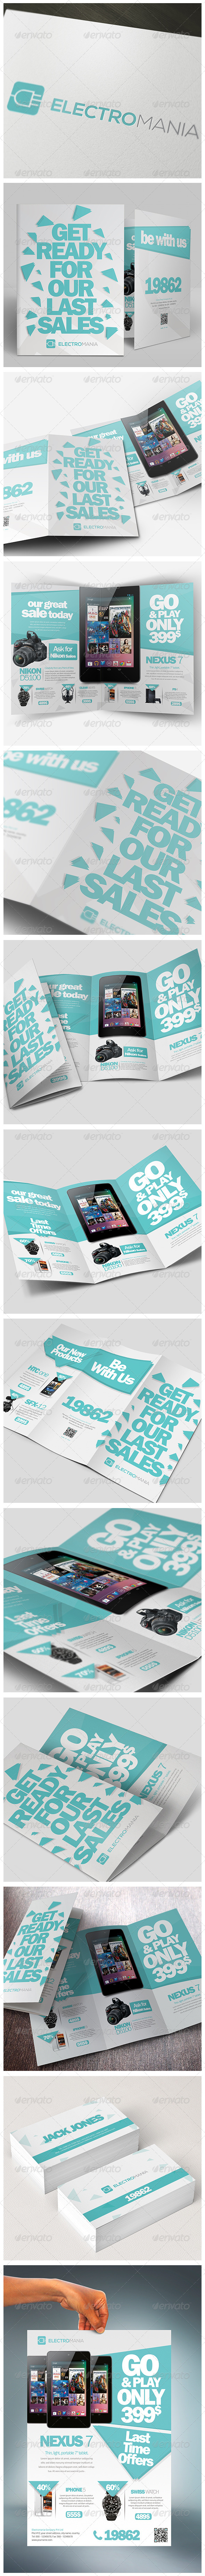 Brochures Pack A4 + Trifold + Flyer + Card - Stationery Print Templates